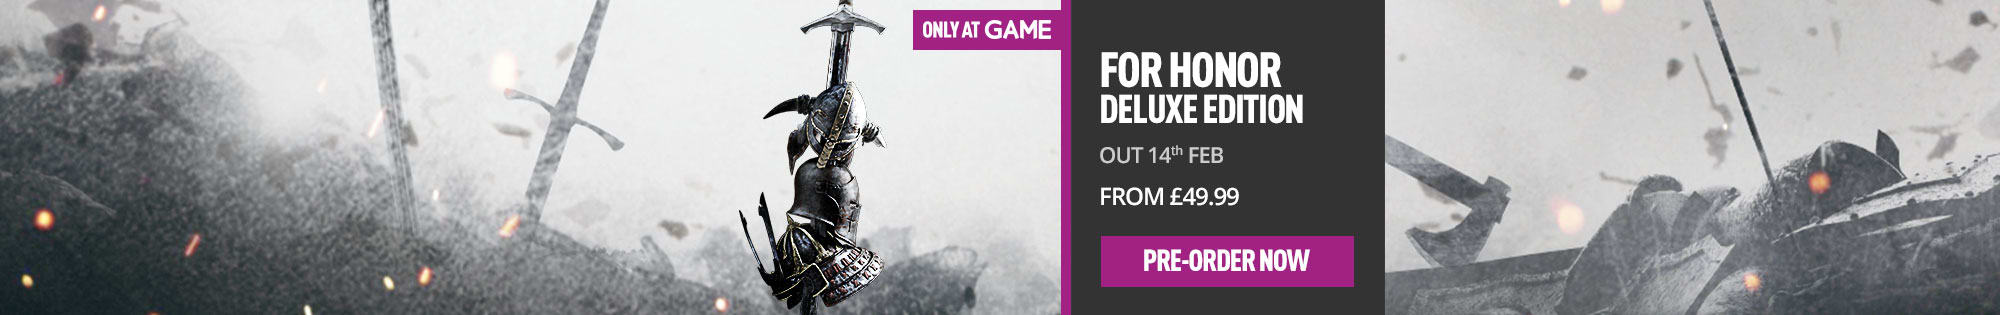 For Honor Deluxe Edition - Only at GAME for Xbox One, PS4 and PC - Pre-order Now at GAME.co.uk